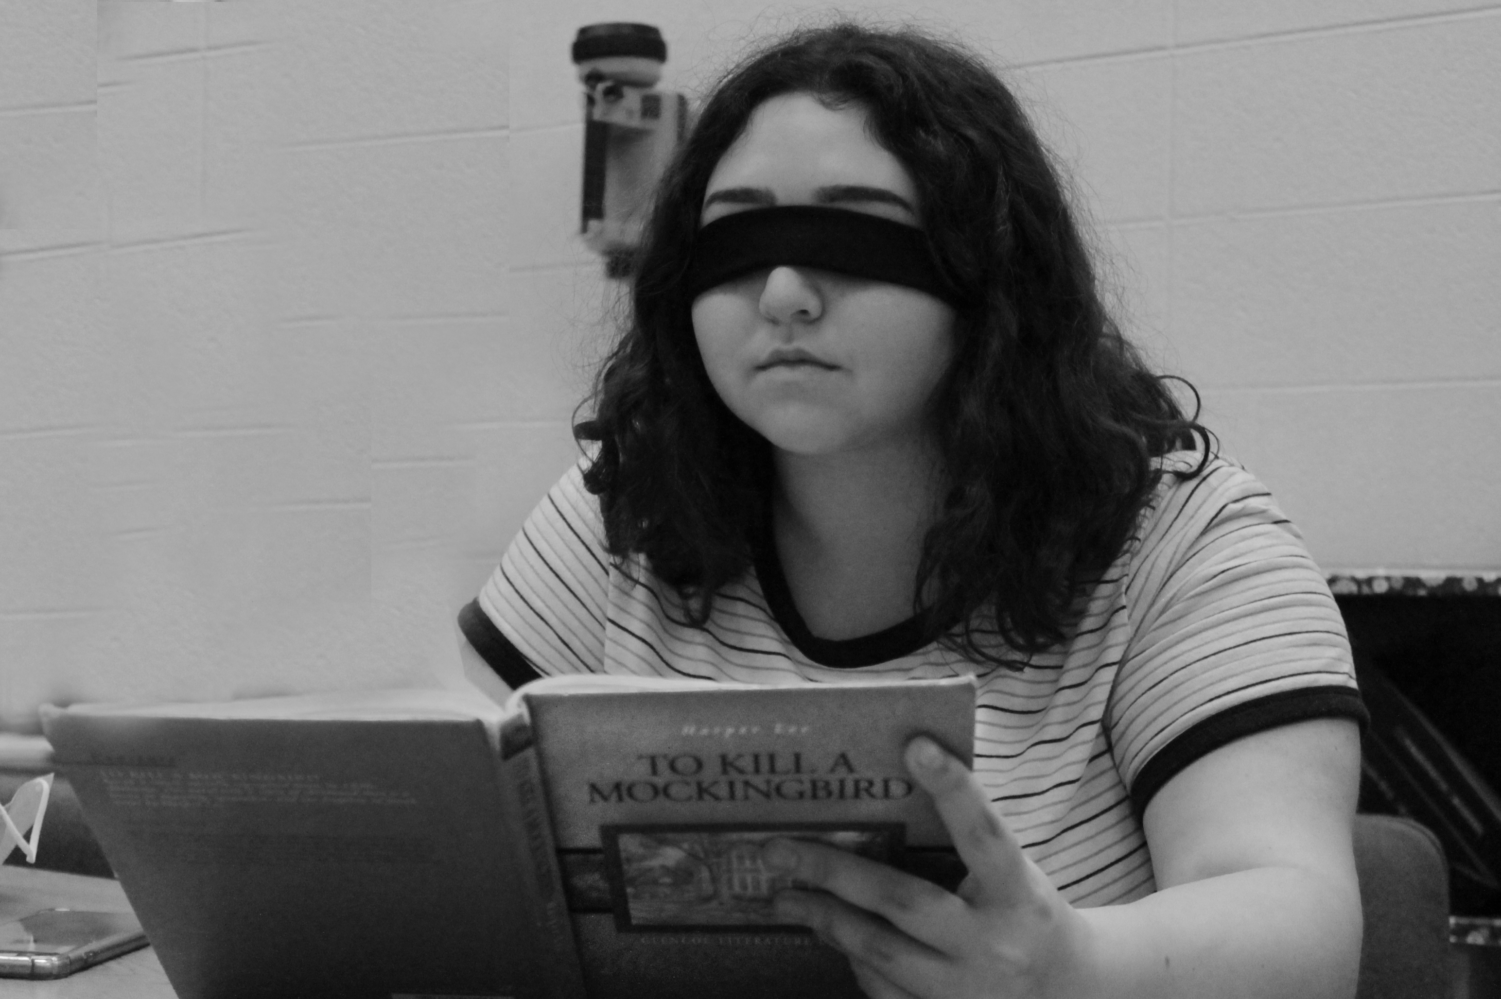 By banning books, we are turning a blind eye and erasing history.